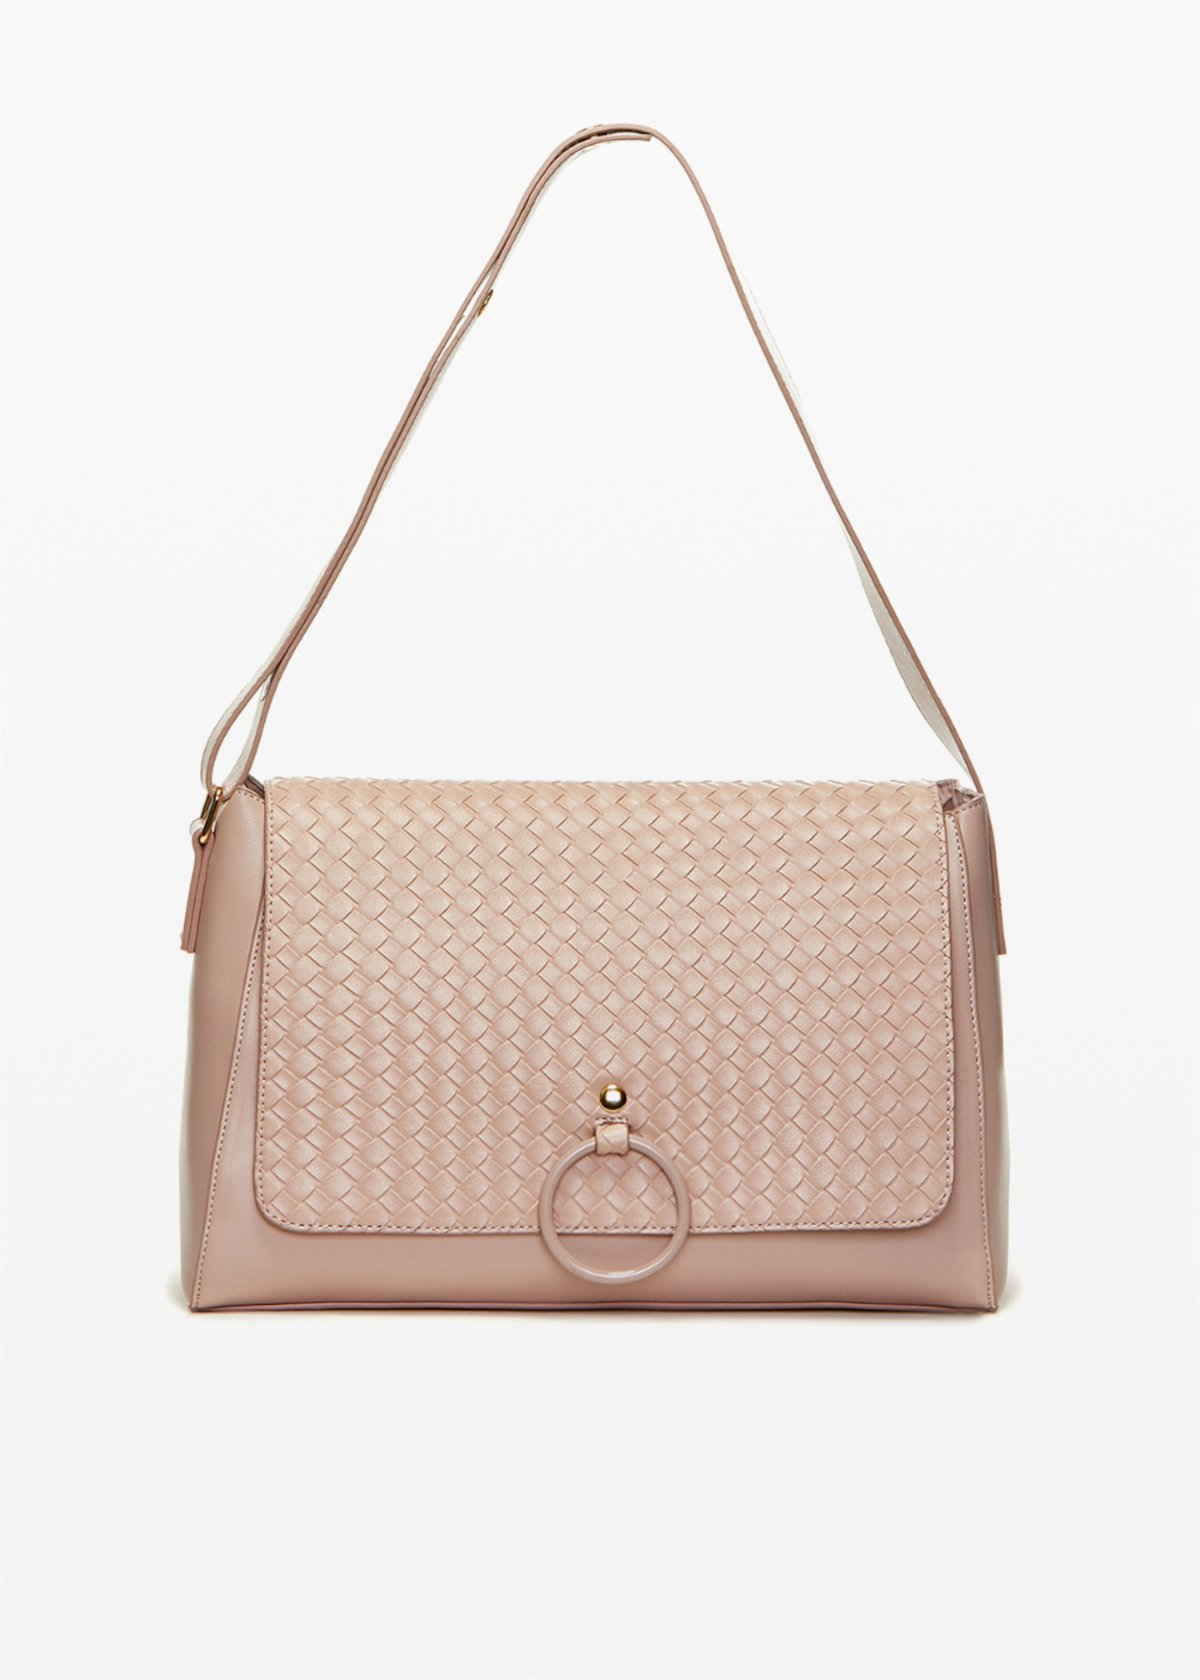 Shoulder bag  Boraliabr in ecopelle con patta braided - Calcite - Donna - Immagine categoria